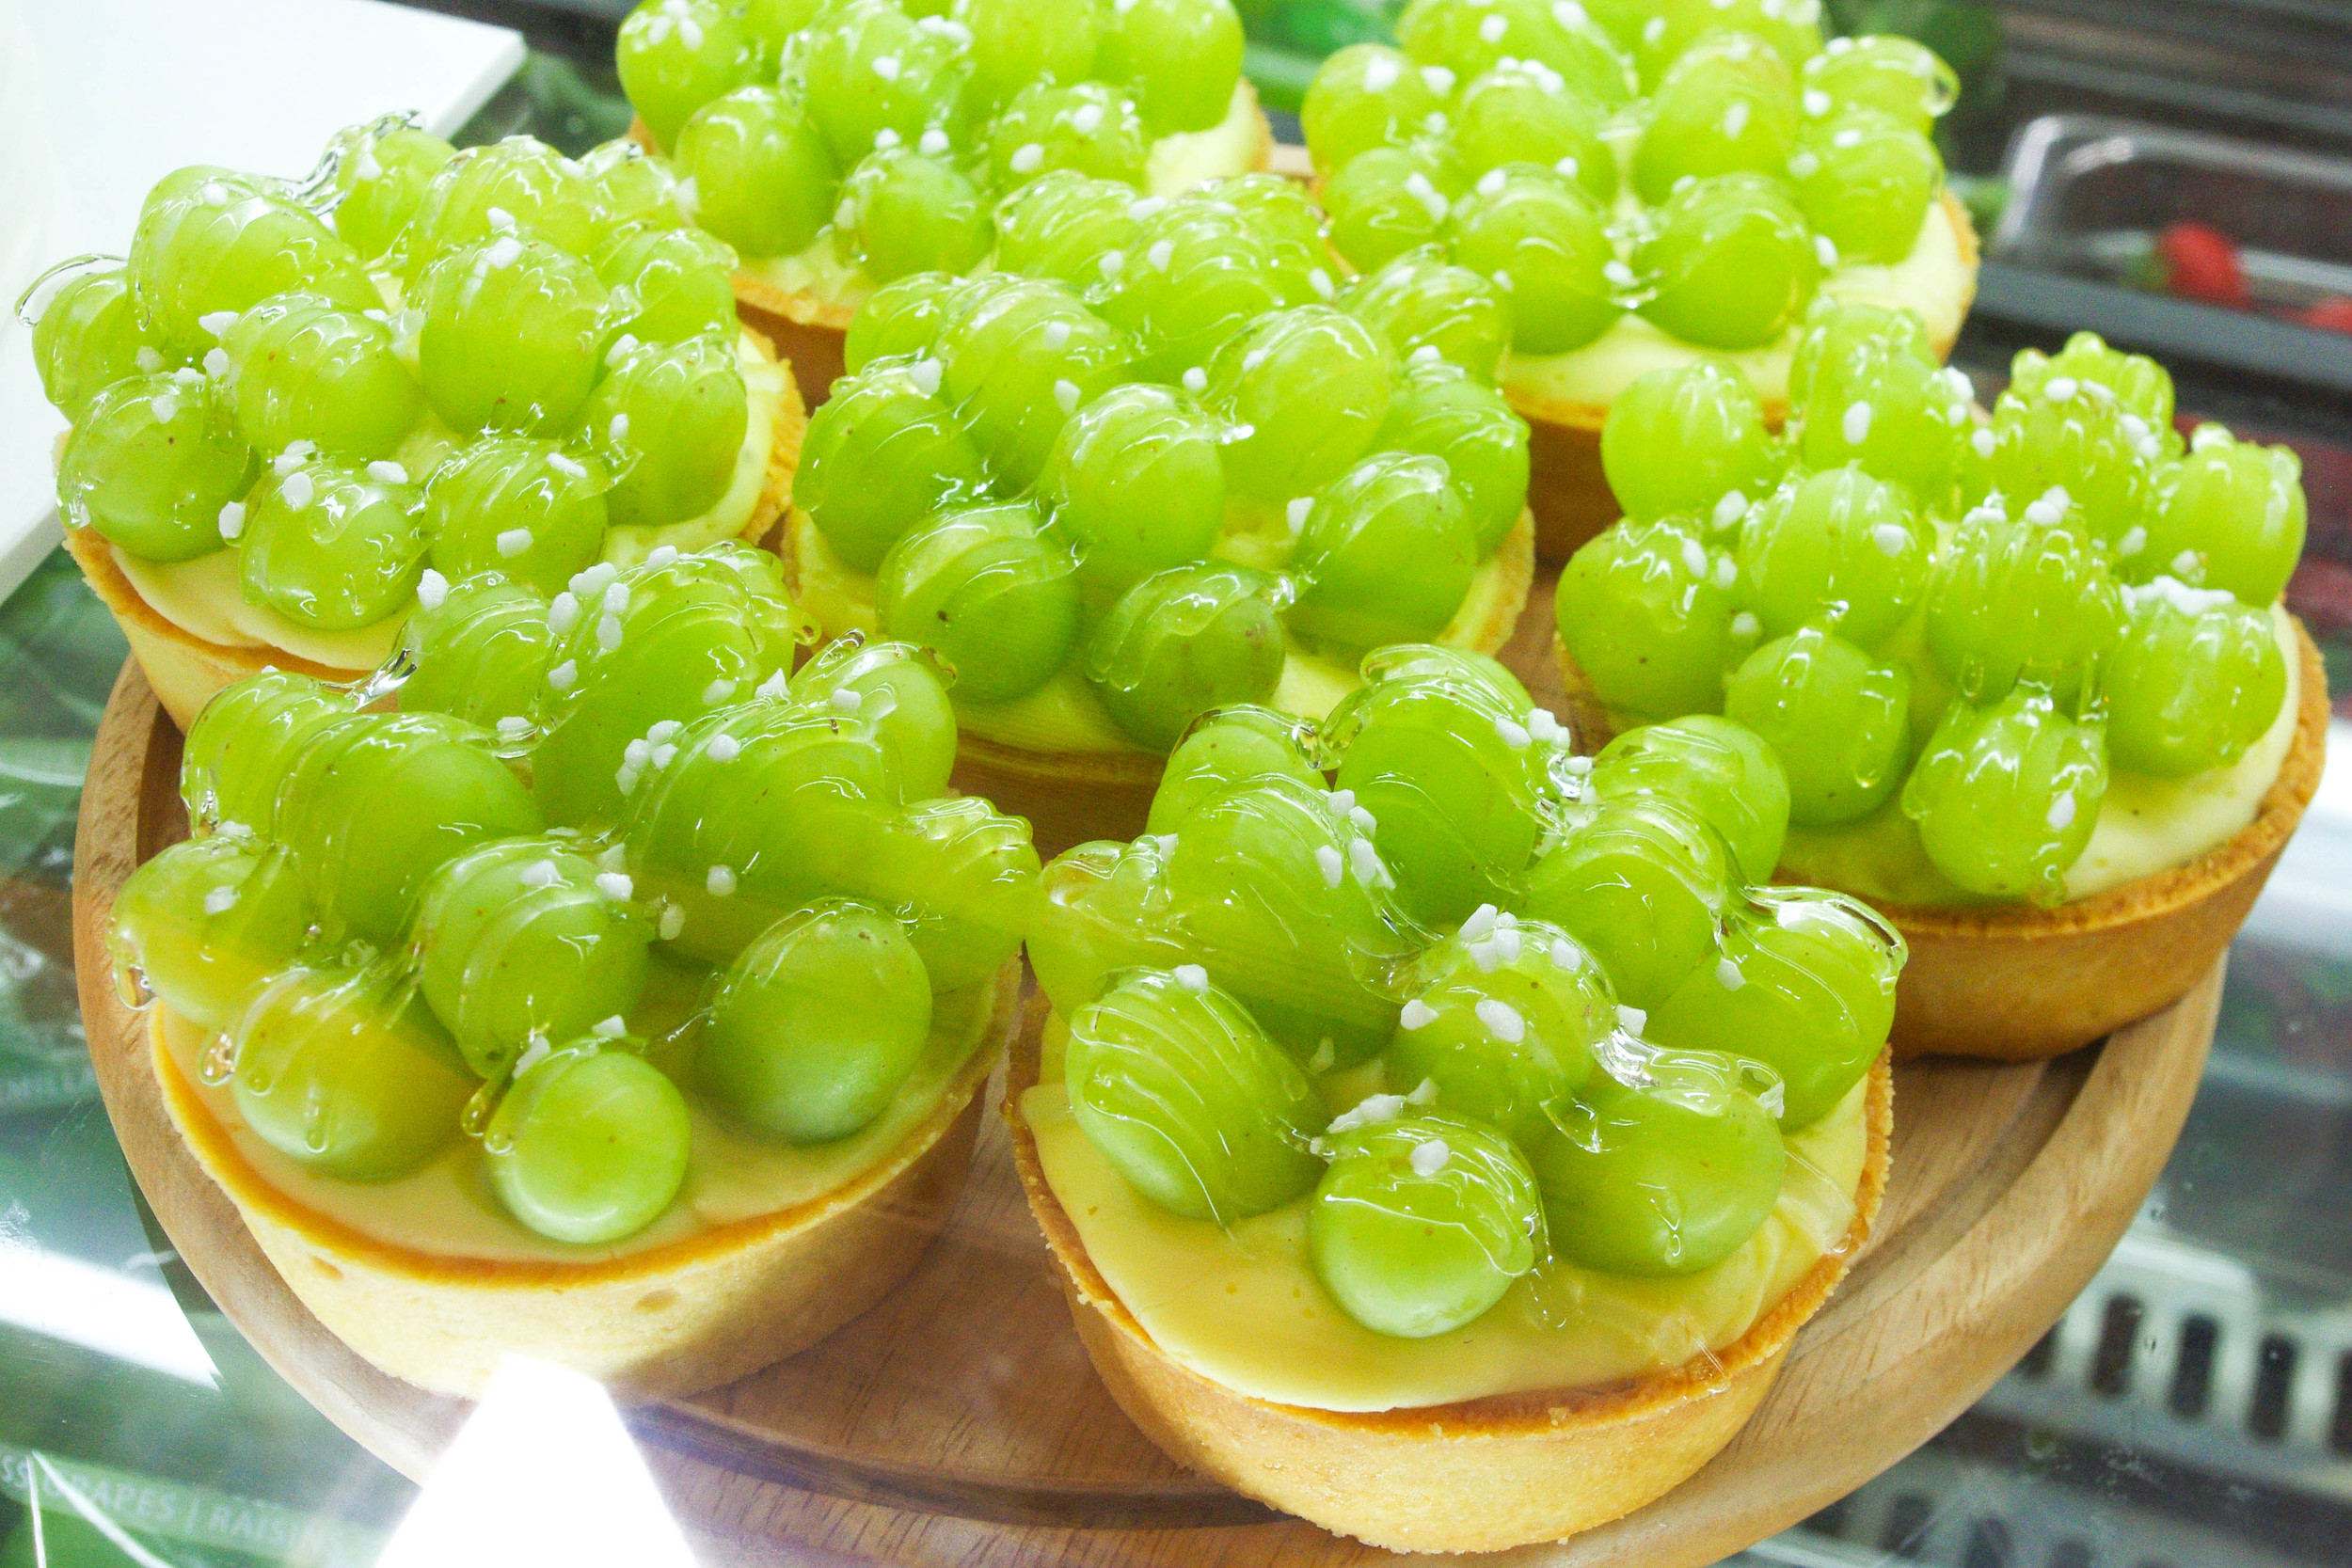 A tart with whole giant green grapes? Adorable!